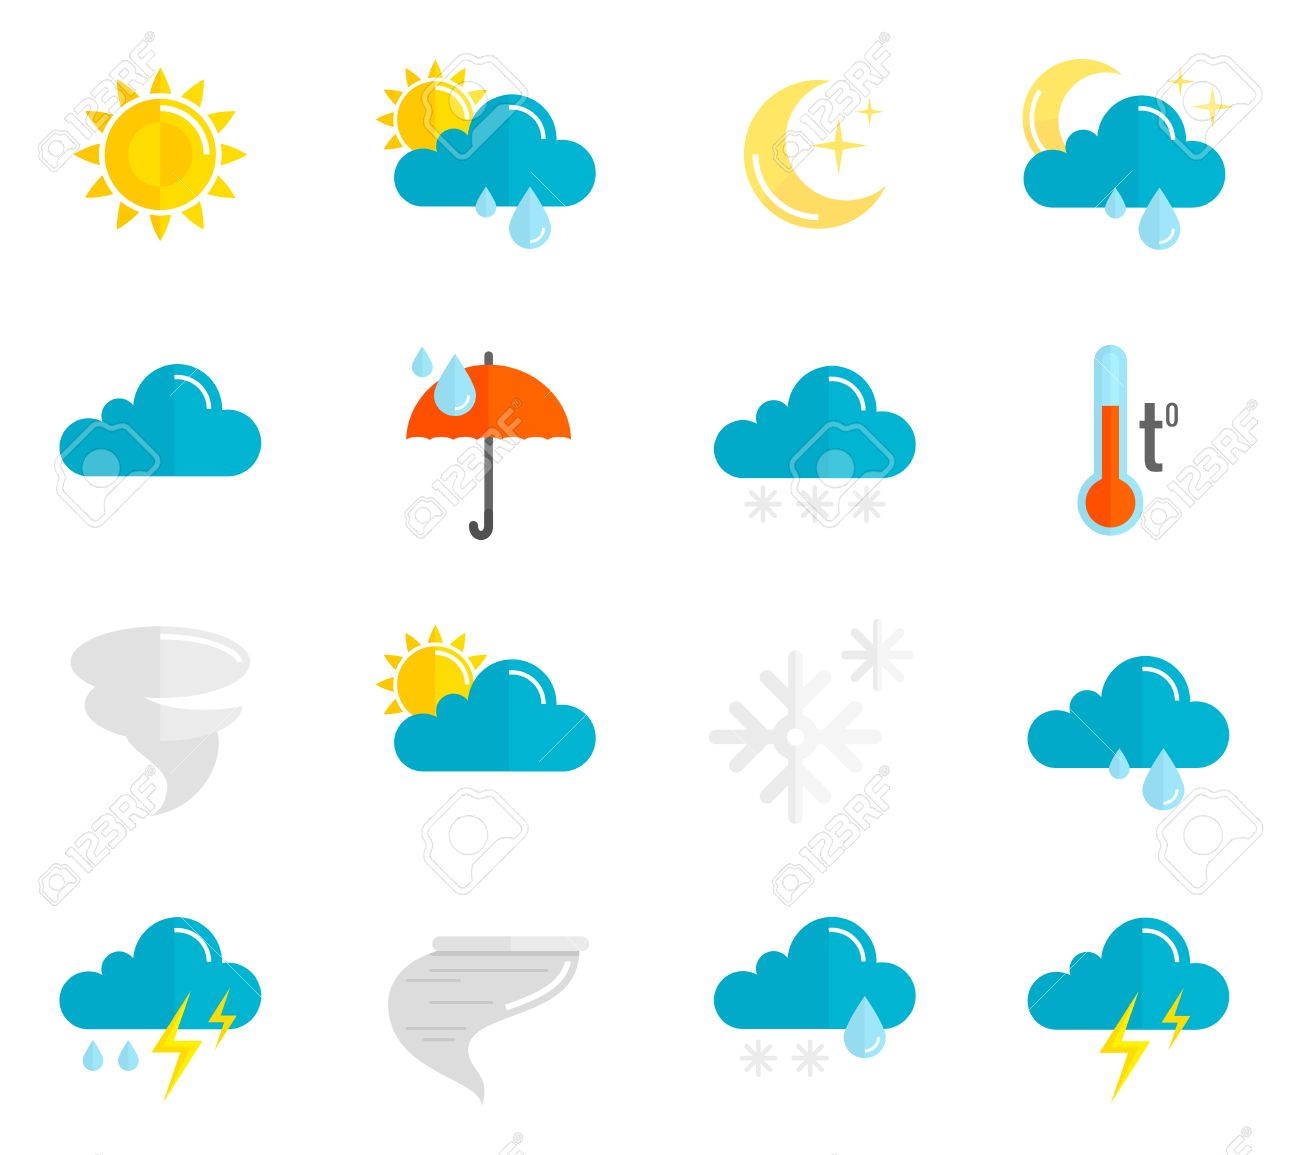 Weather Forecast And Meteorology Symbols Icons Flat Set Isolated